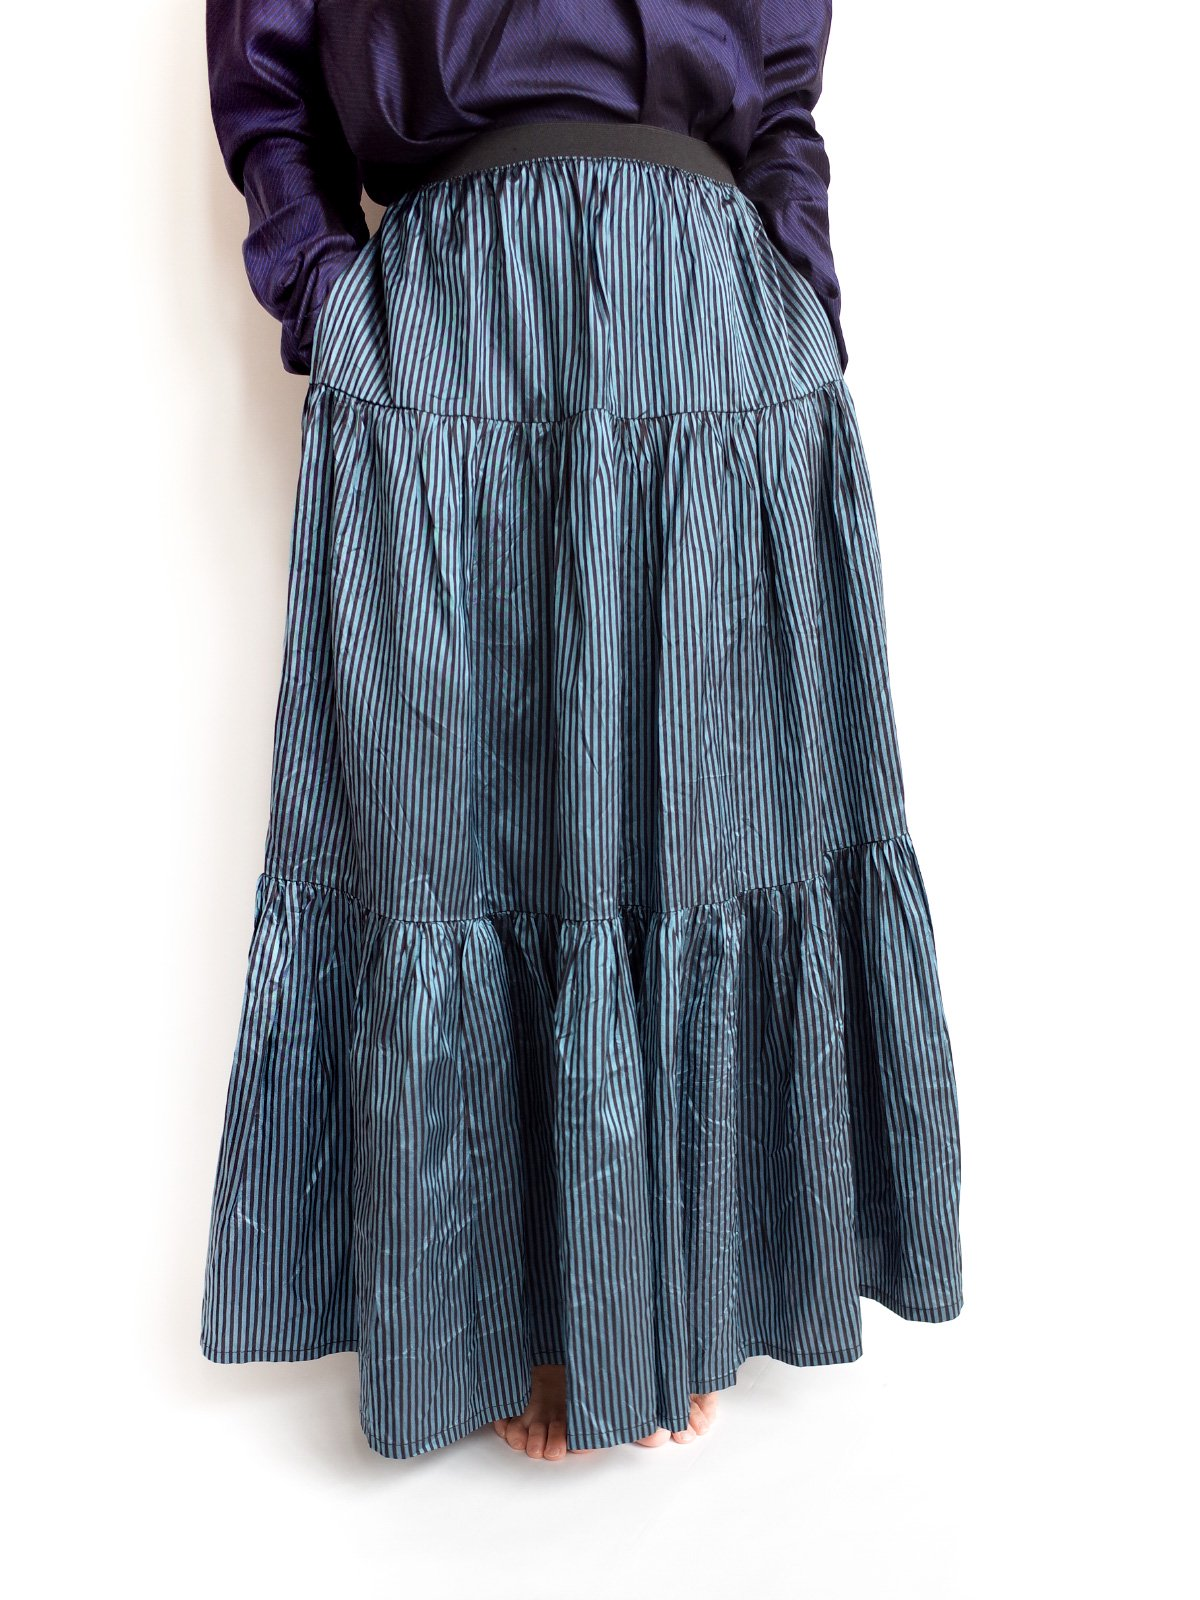 Tiered Skirt / blue× black サムネイル